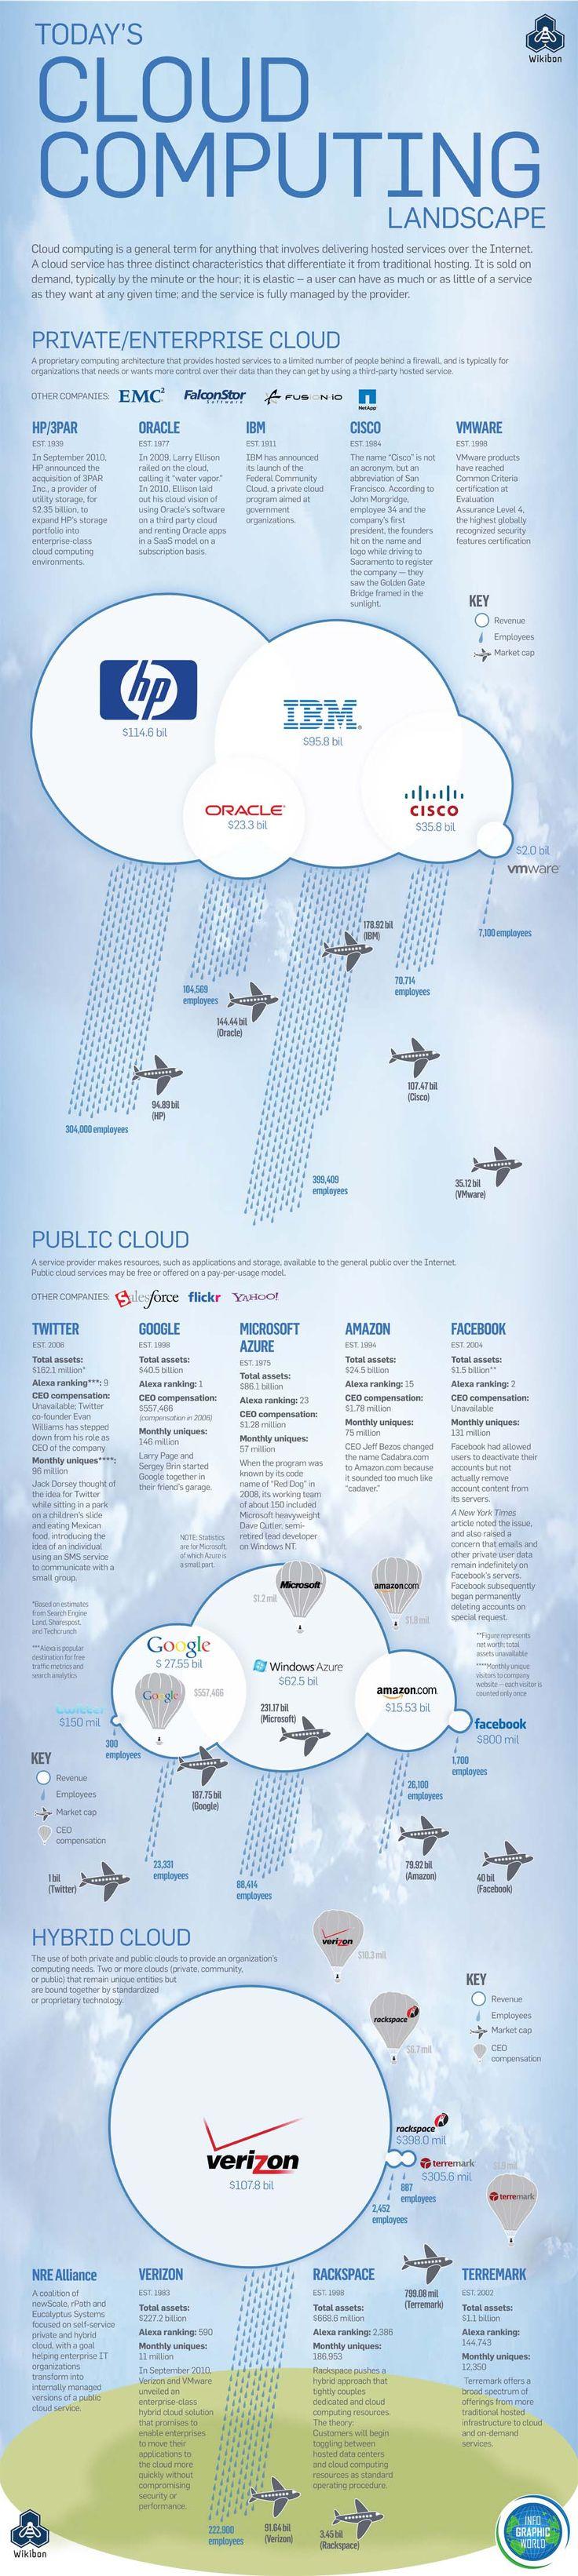 A Muddled Look at Today's Cloud Computing Landscape [Infographic]